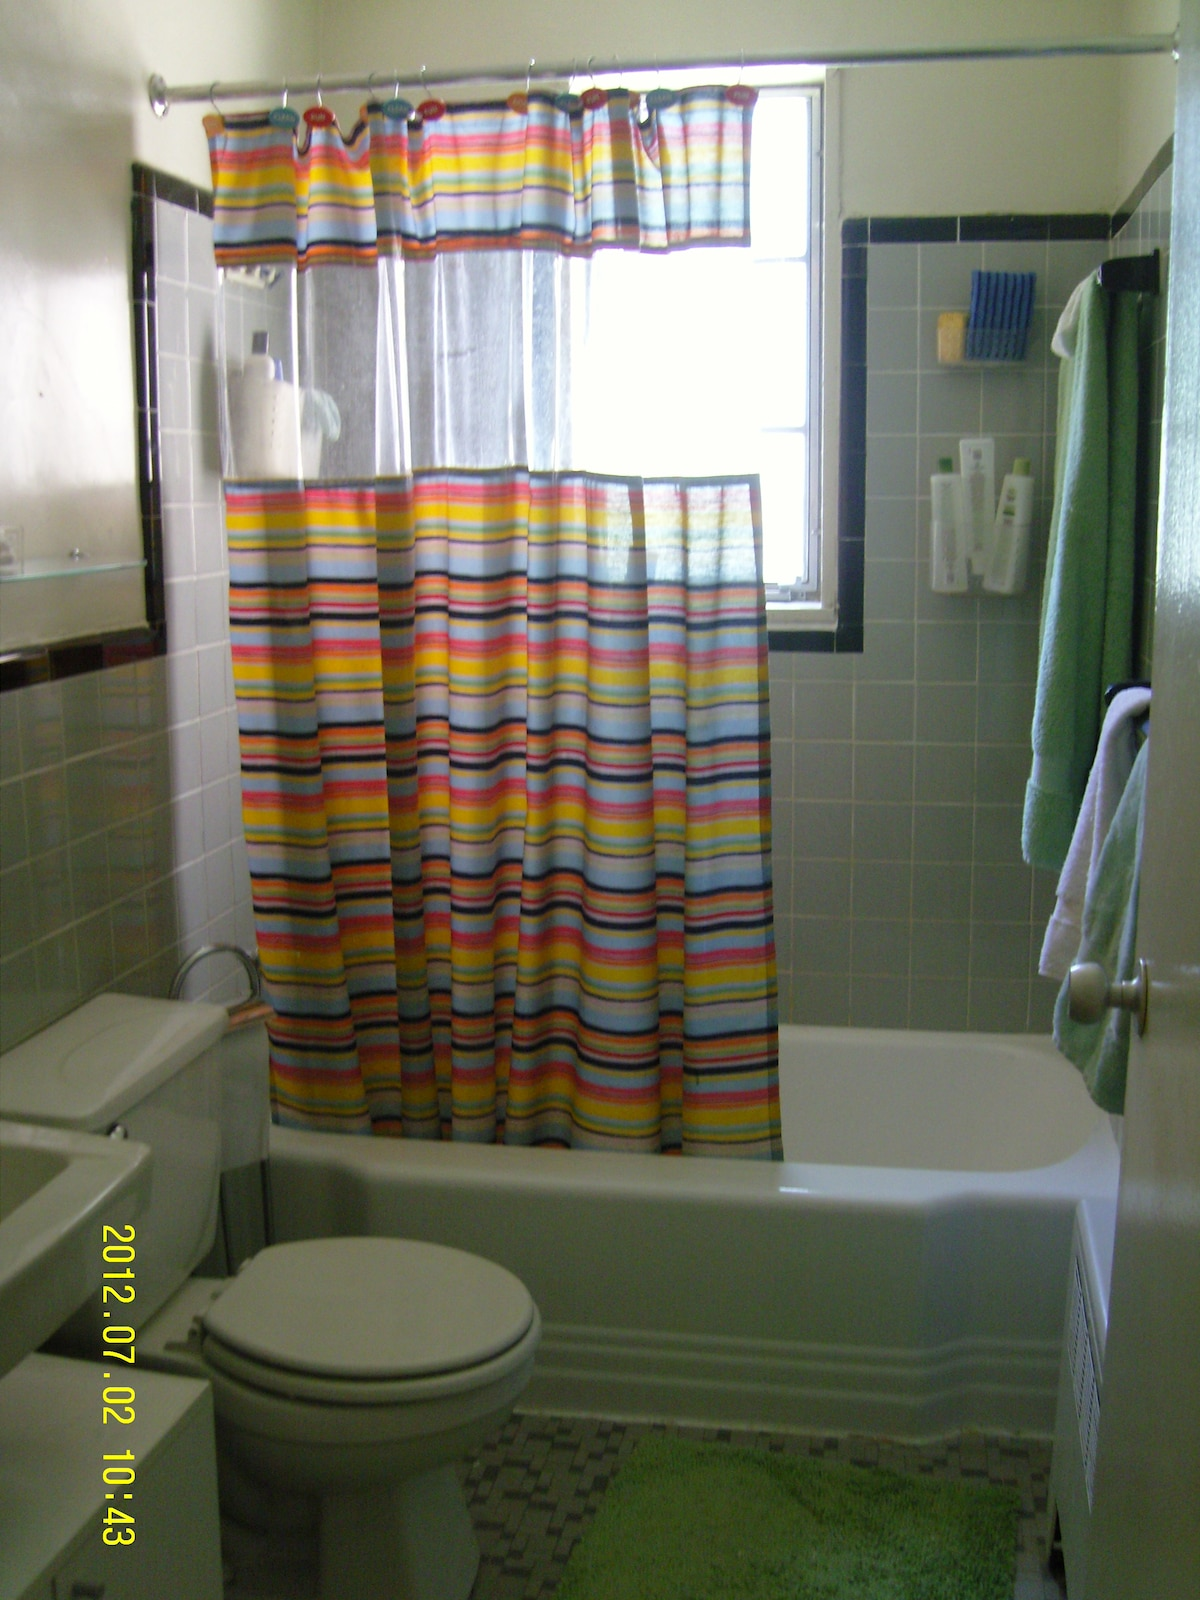 Yes, even the bathroom get's a splash of color!